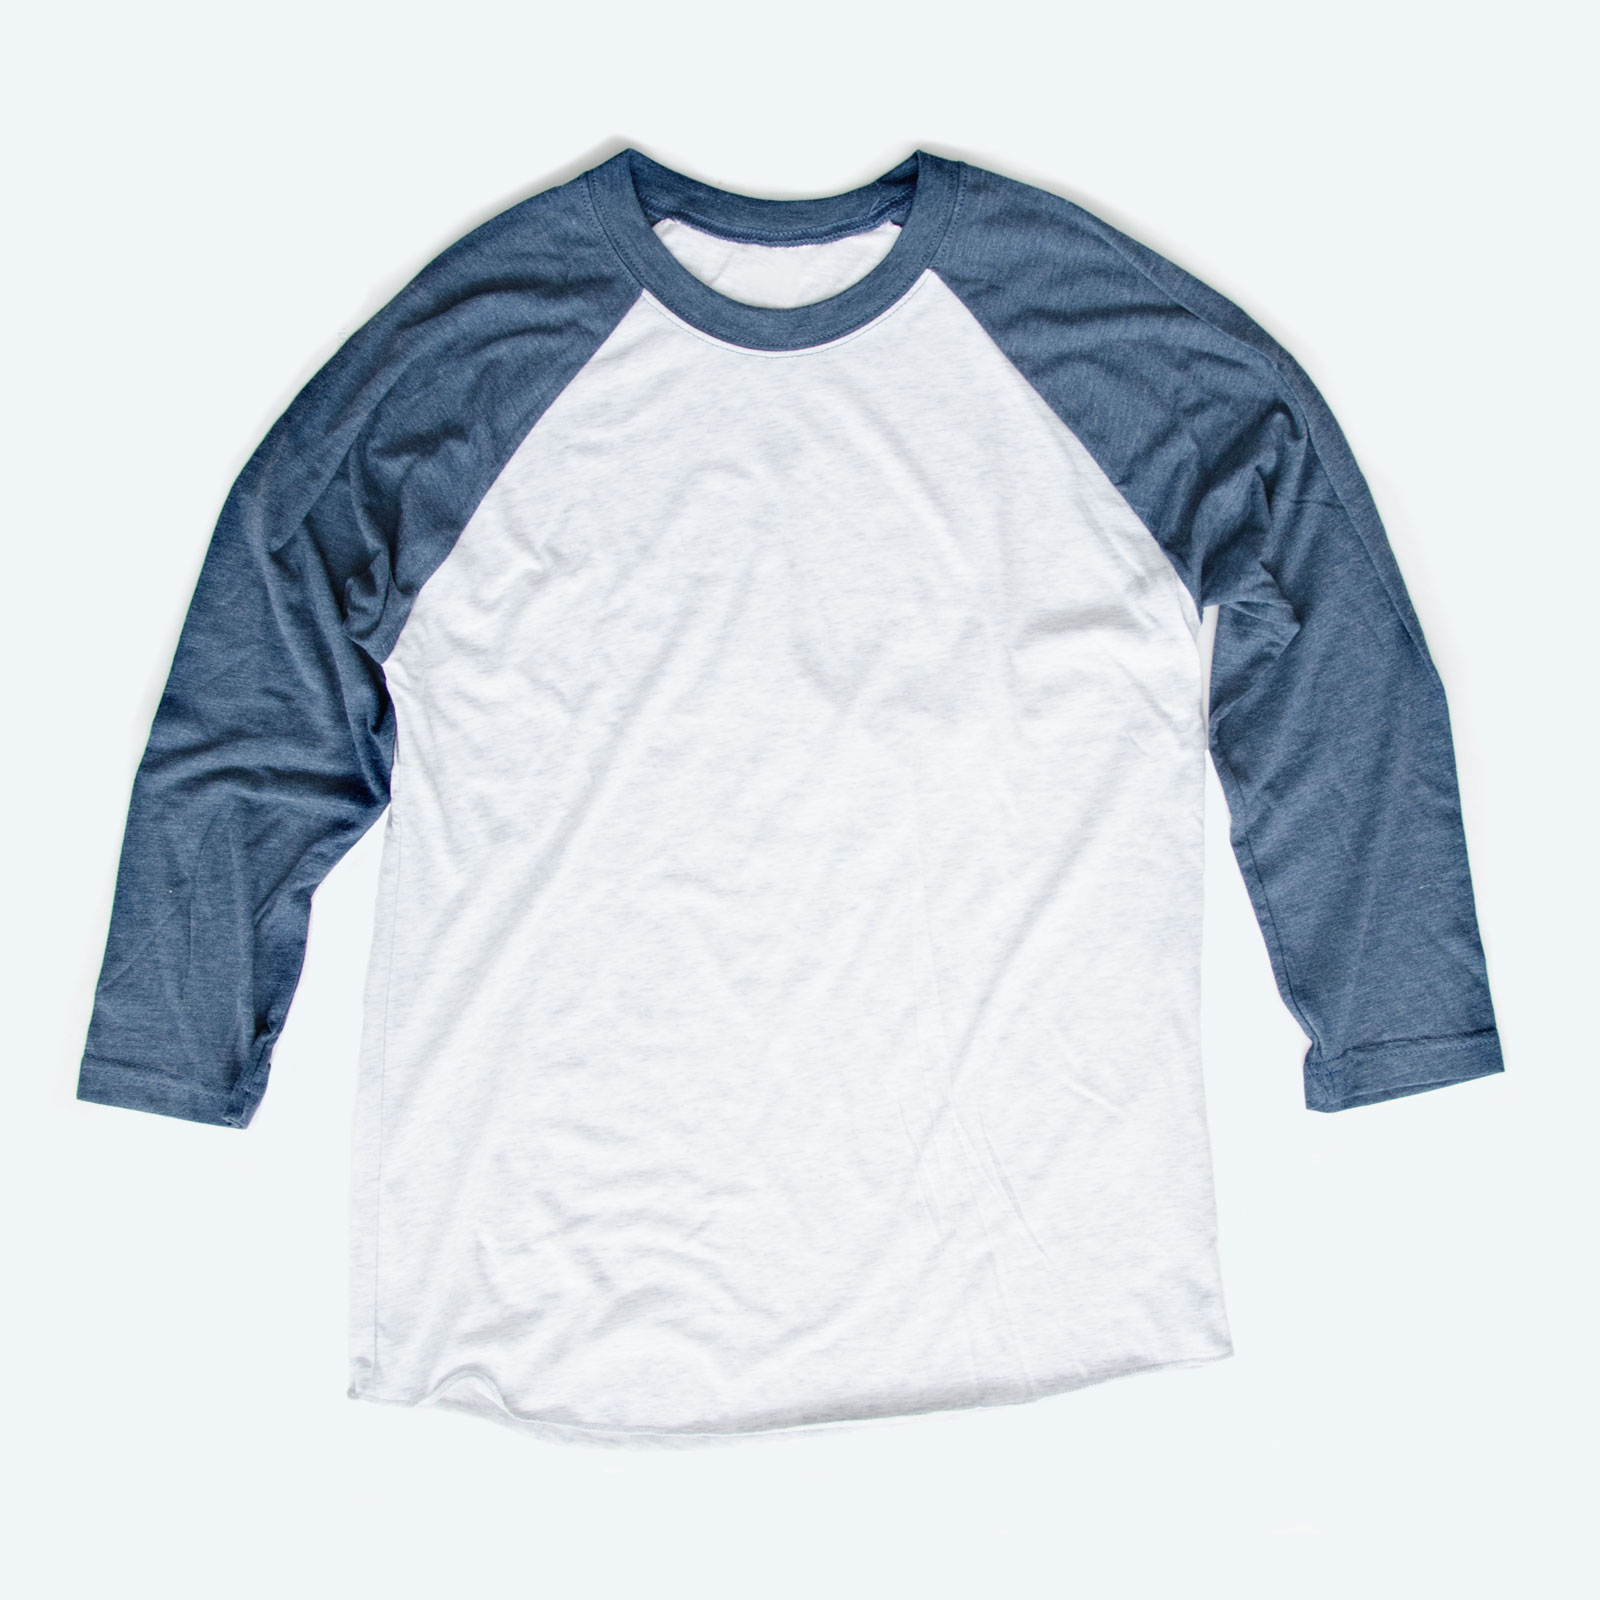 Baseball tees are great t-shirts to sell online.